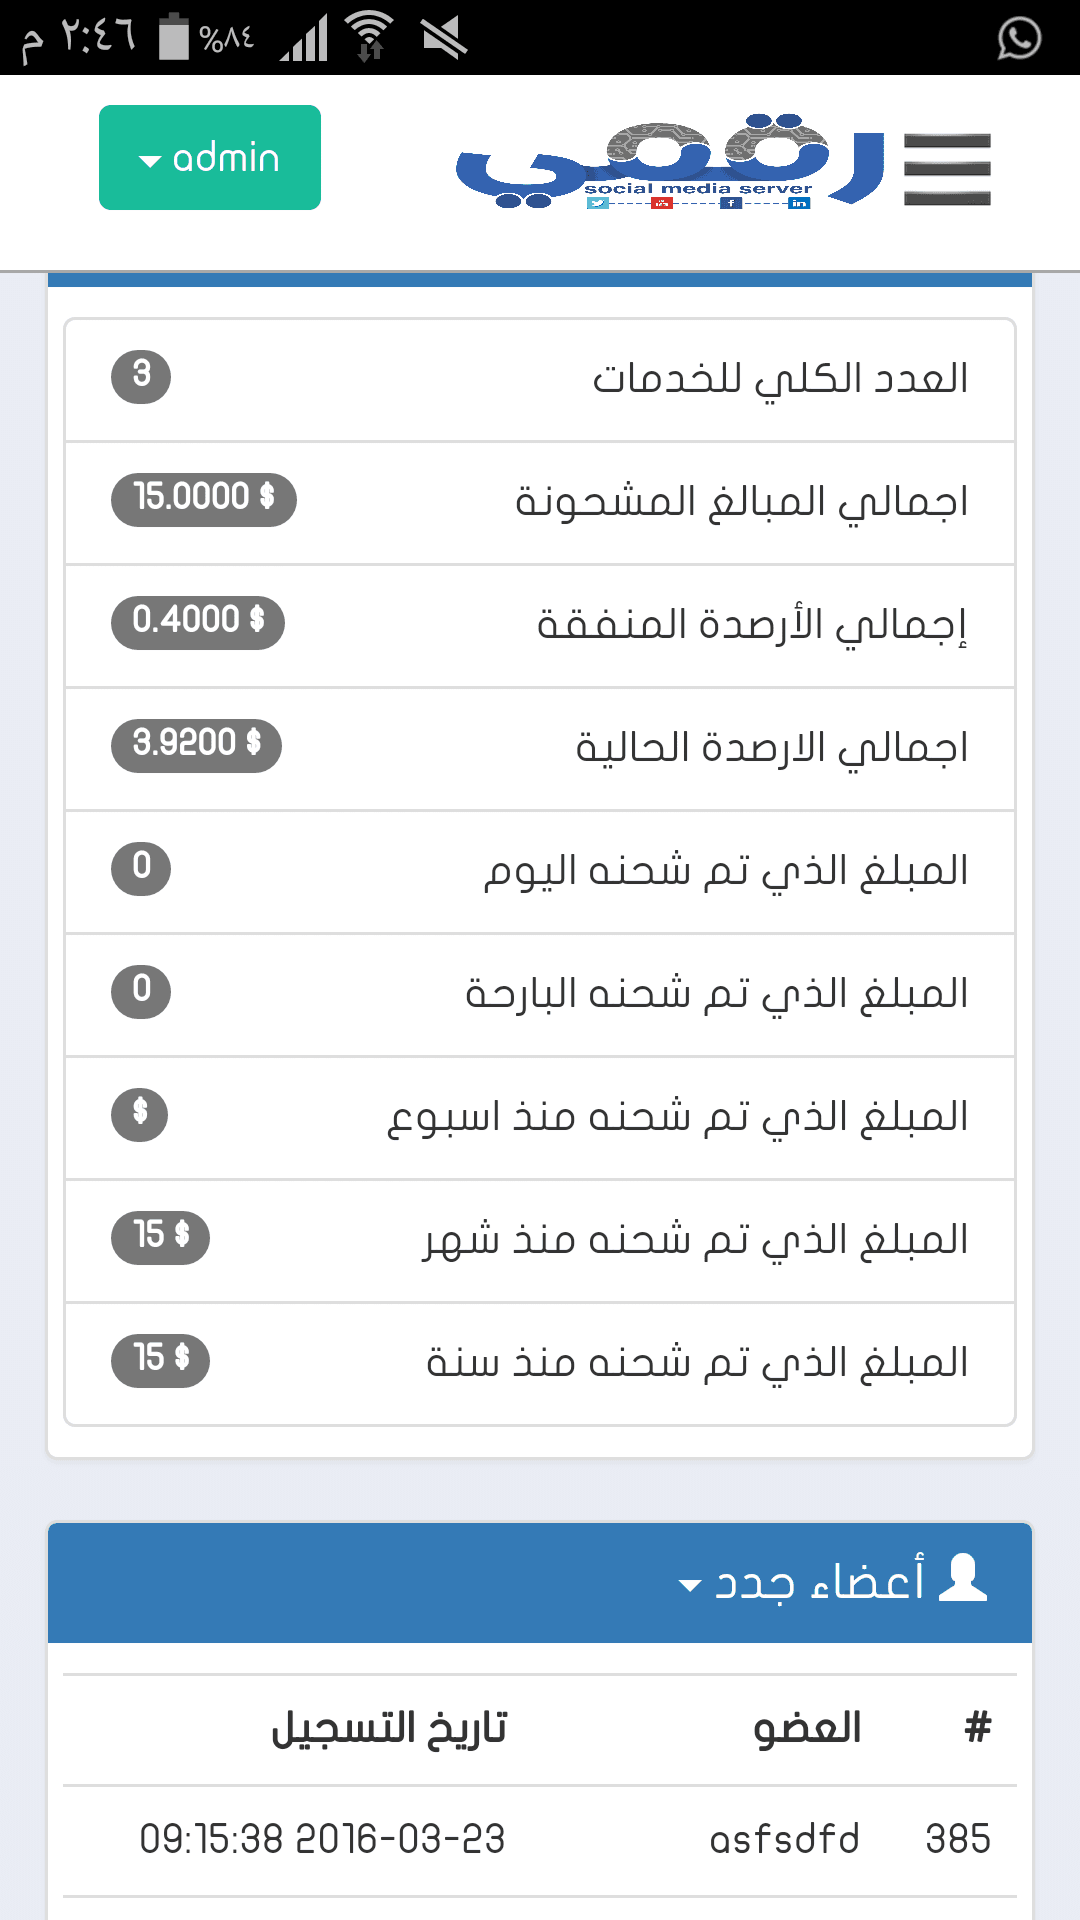 Screenshot_٢٠١٦-٠٣-٢٦-١٤-٤٦-٣٧